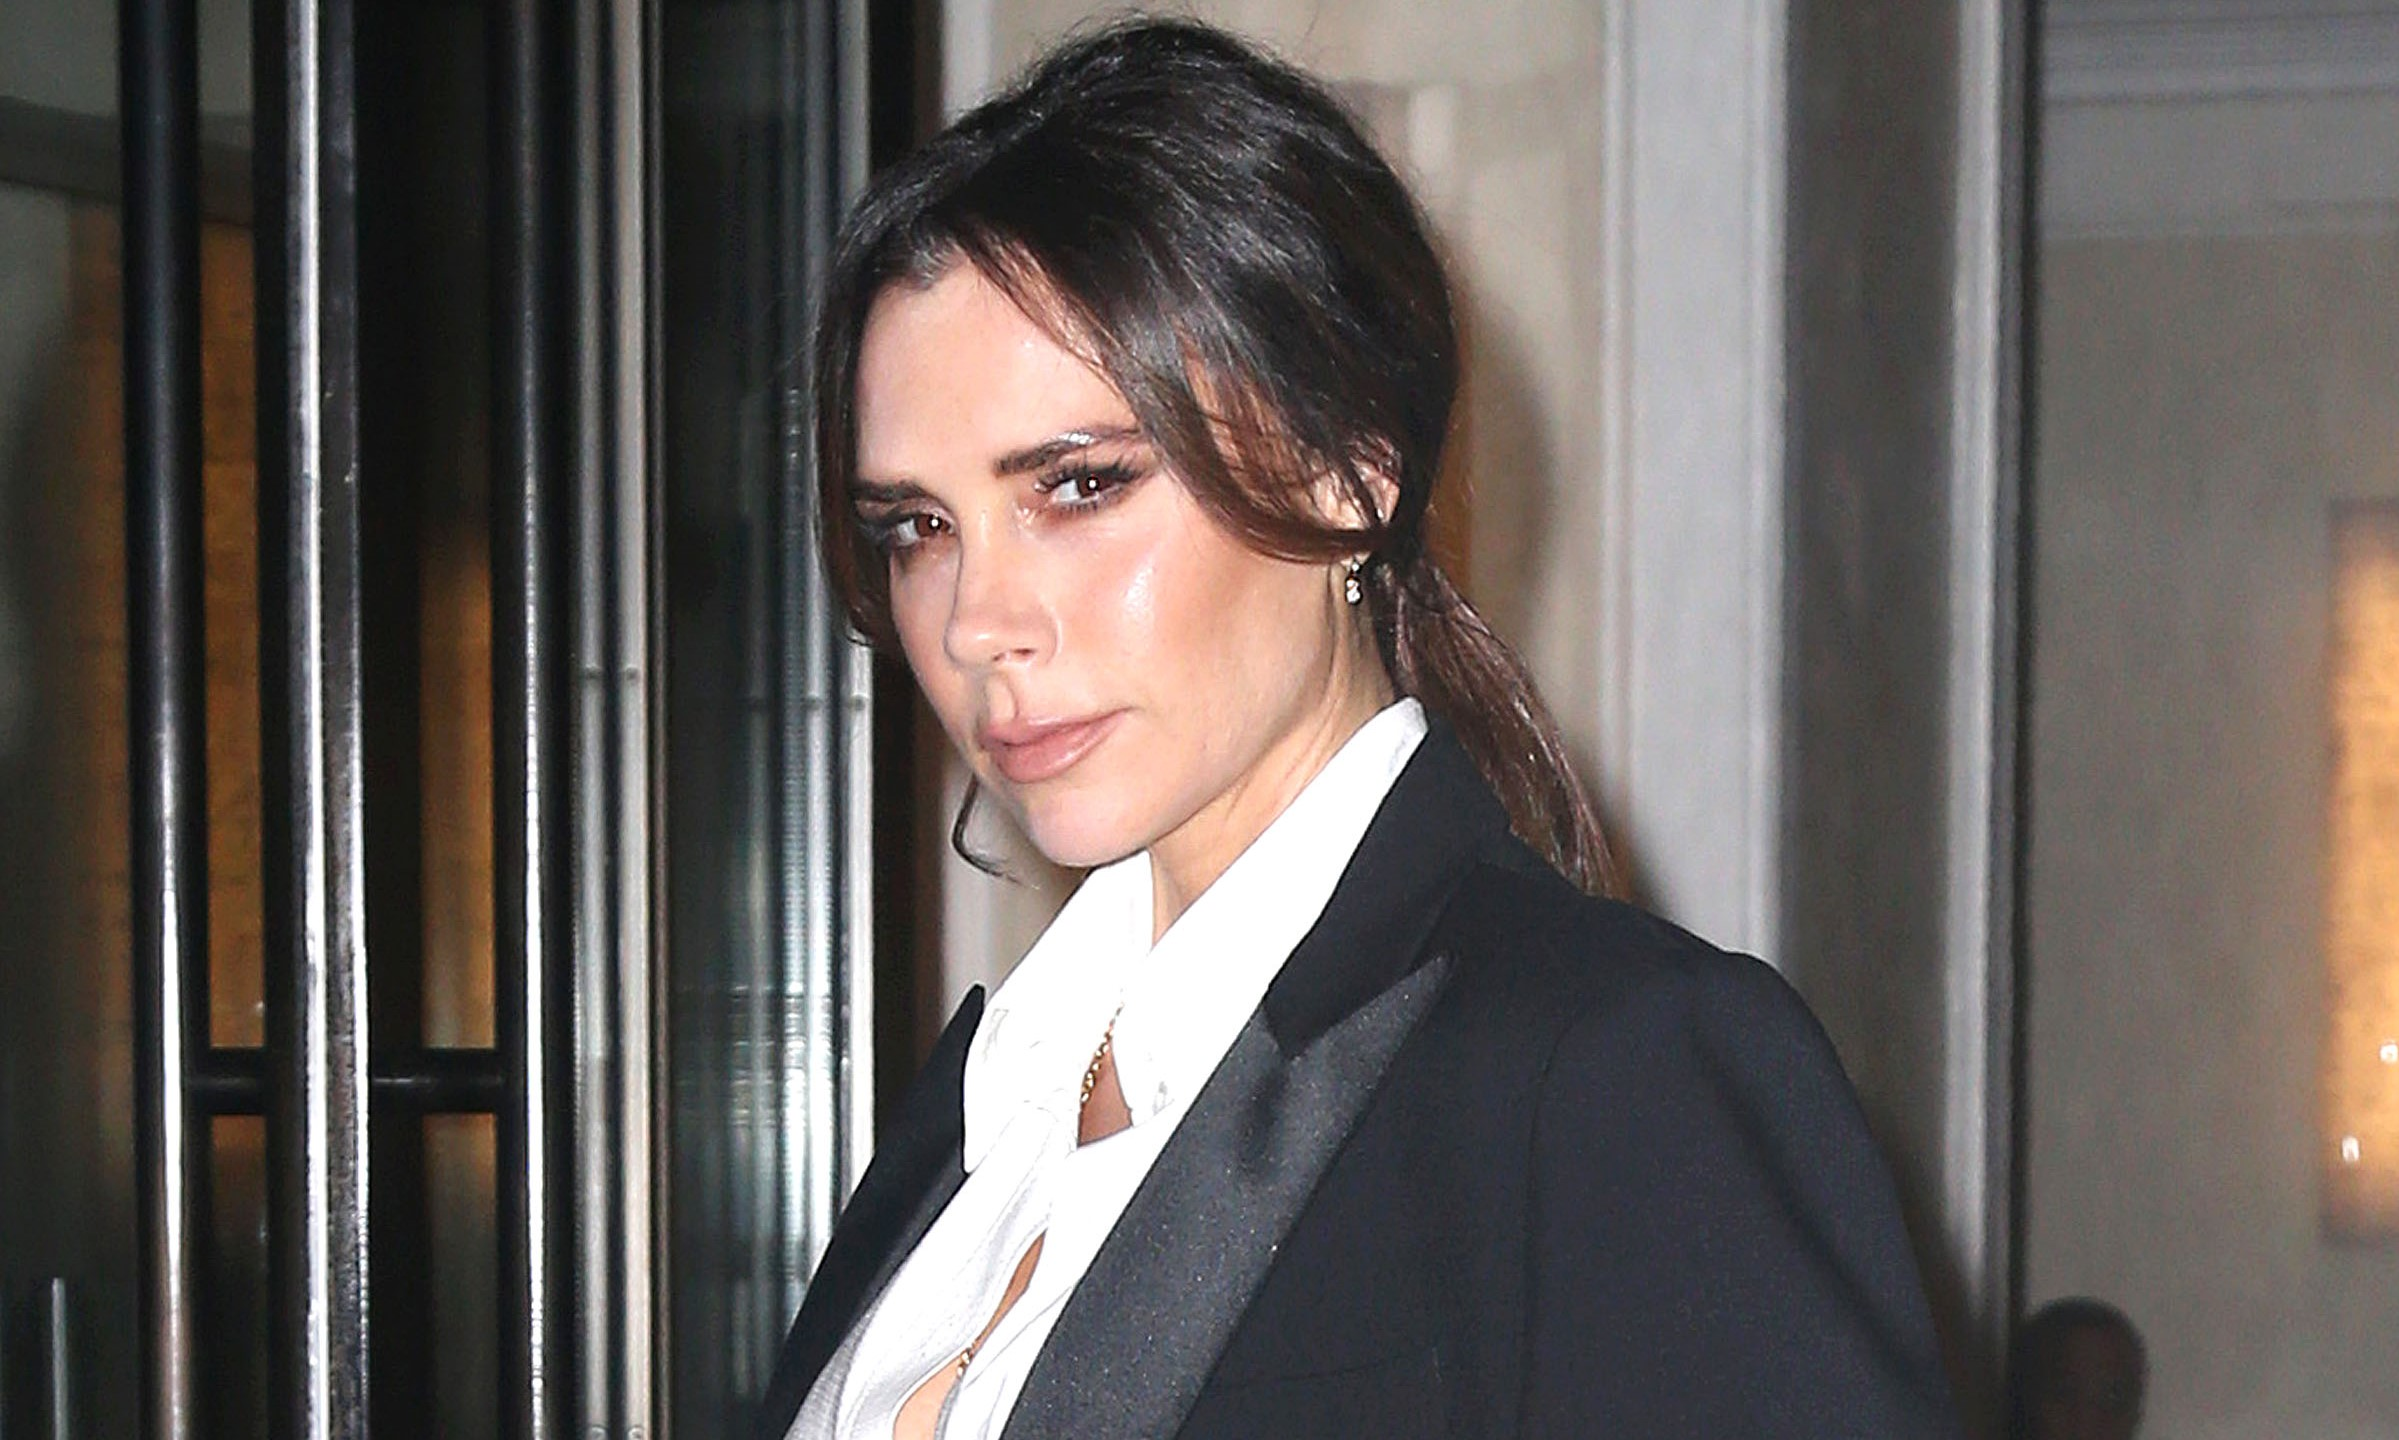 Fans have 'everything crossed' Victoria Beckham will join Spice Girls for Wembley tour finale